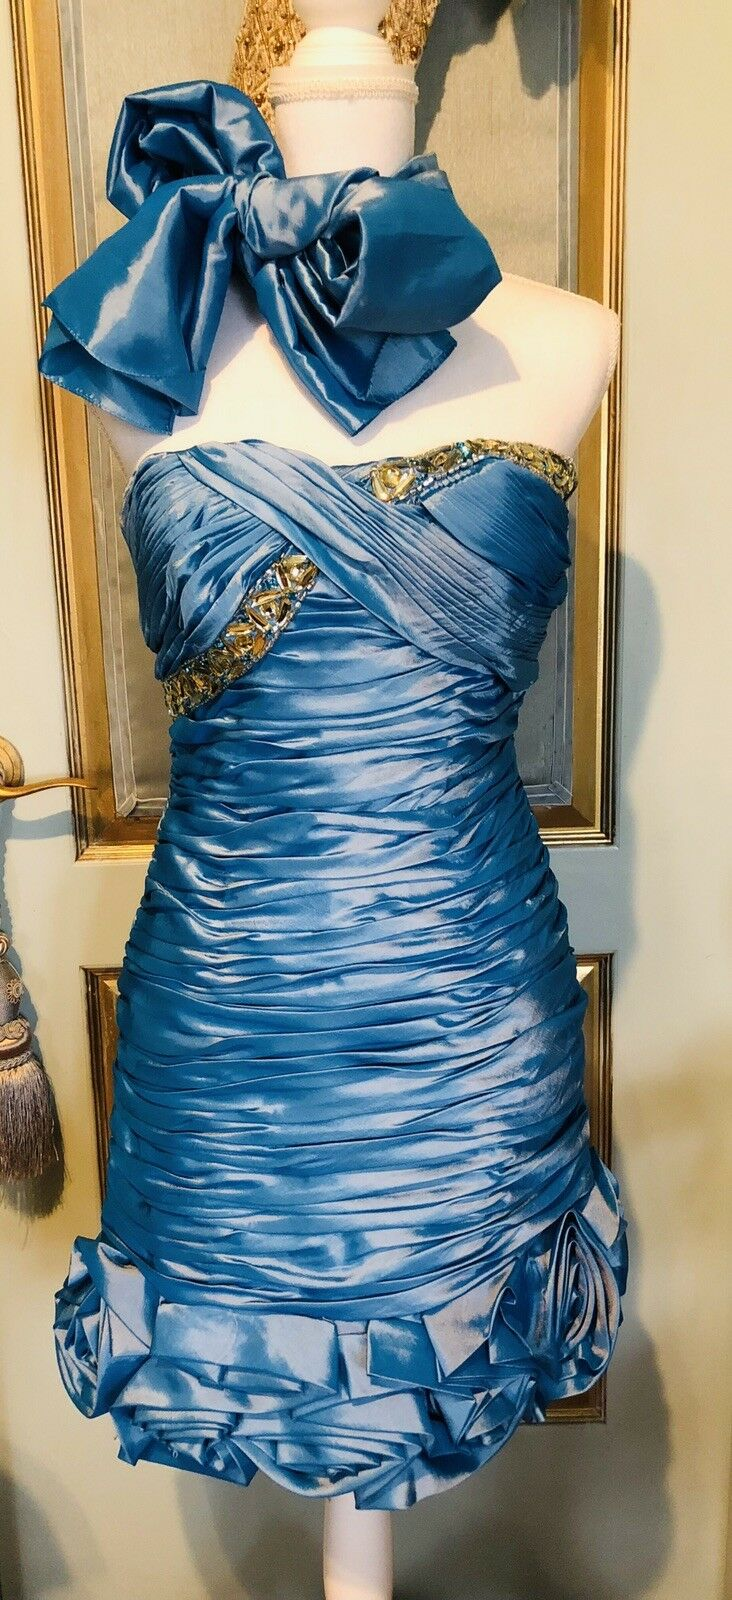 New Turquoise Embellished Evening Dress With Scarf Größe S